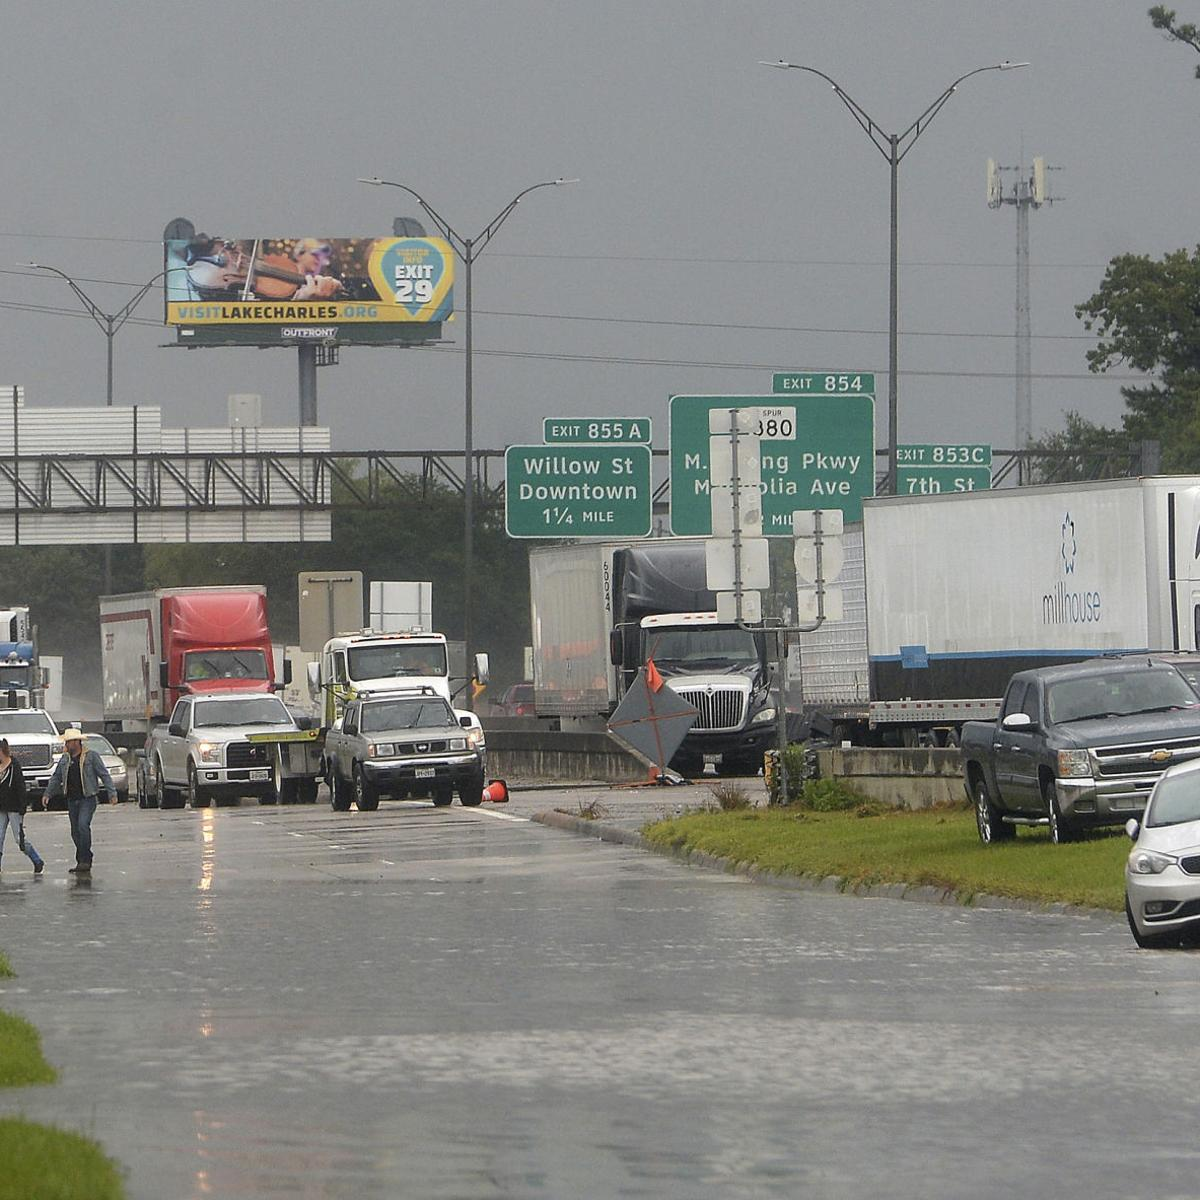 I-10 reopens at Louisiana state line, remains closed on ... on interstate 27 highway map, interstate 40 map, eastern interstate highway map, hwy 90 map, i-70 highway map, us interstate highway map, interstate 81 highway map, i-35 highway map, interstate 75 highway map, national highway system map, interstate 71 highway map, interstate highway system, interstate 95 highway map, interstate 80 highway map, interstate 55 highway map, i-75 highway map, interstate 70 map, interstate 10 highway map, pa interstate highway map, united states interstate and highway map,